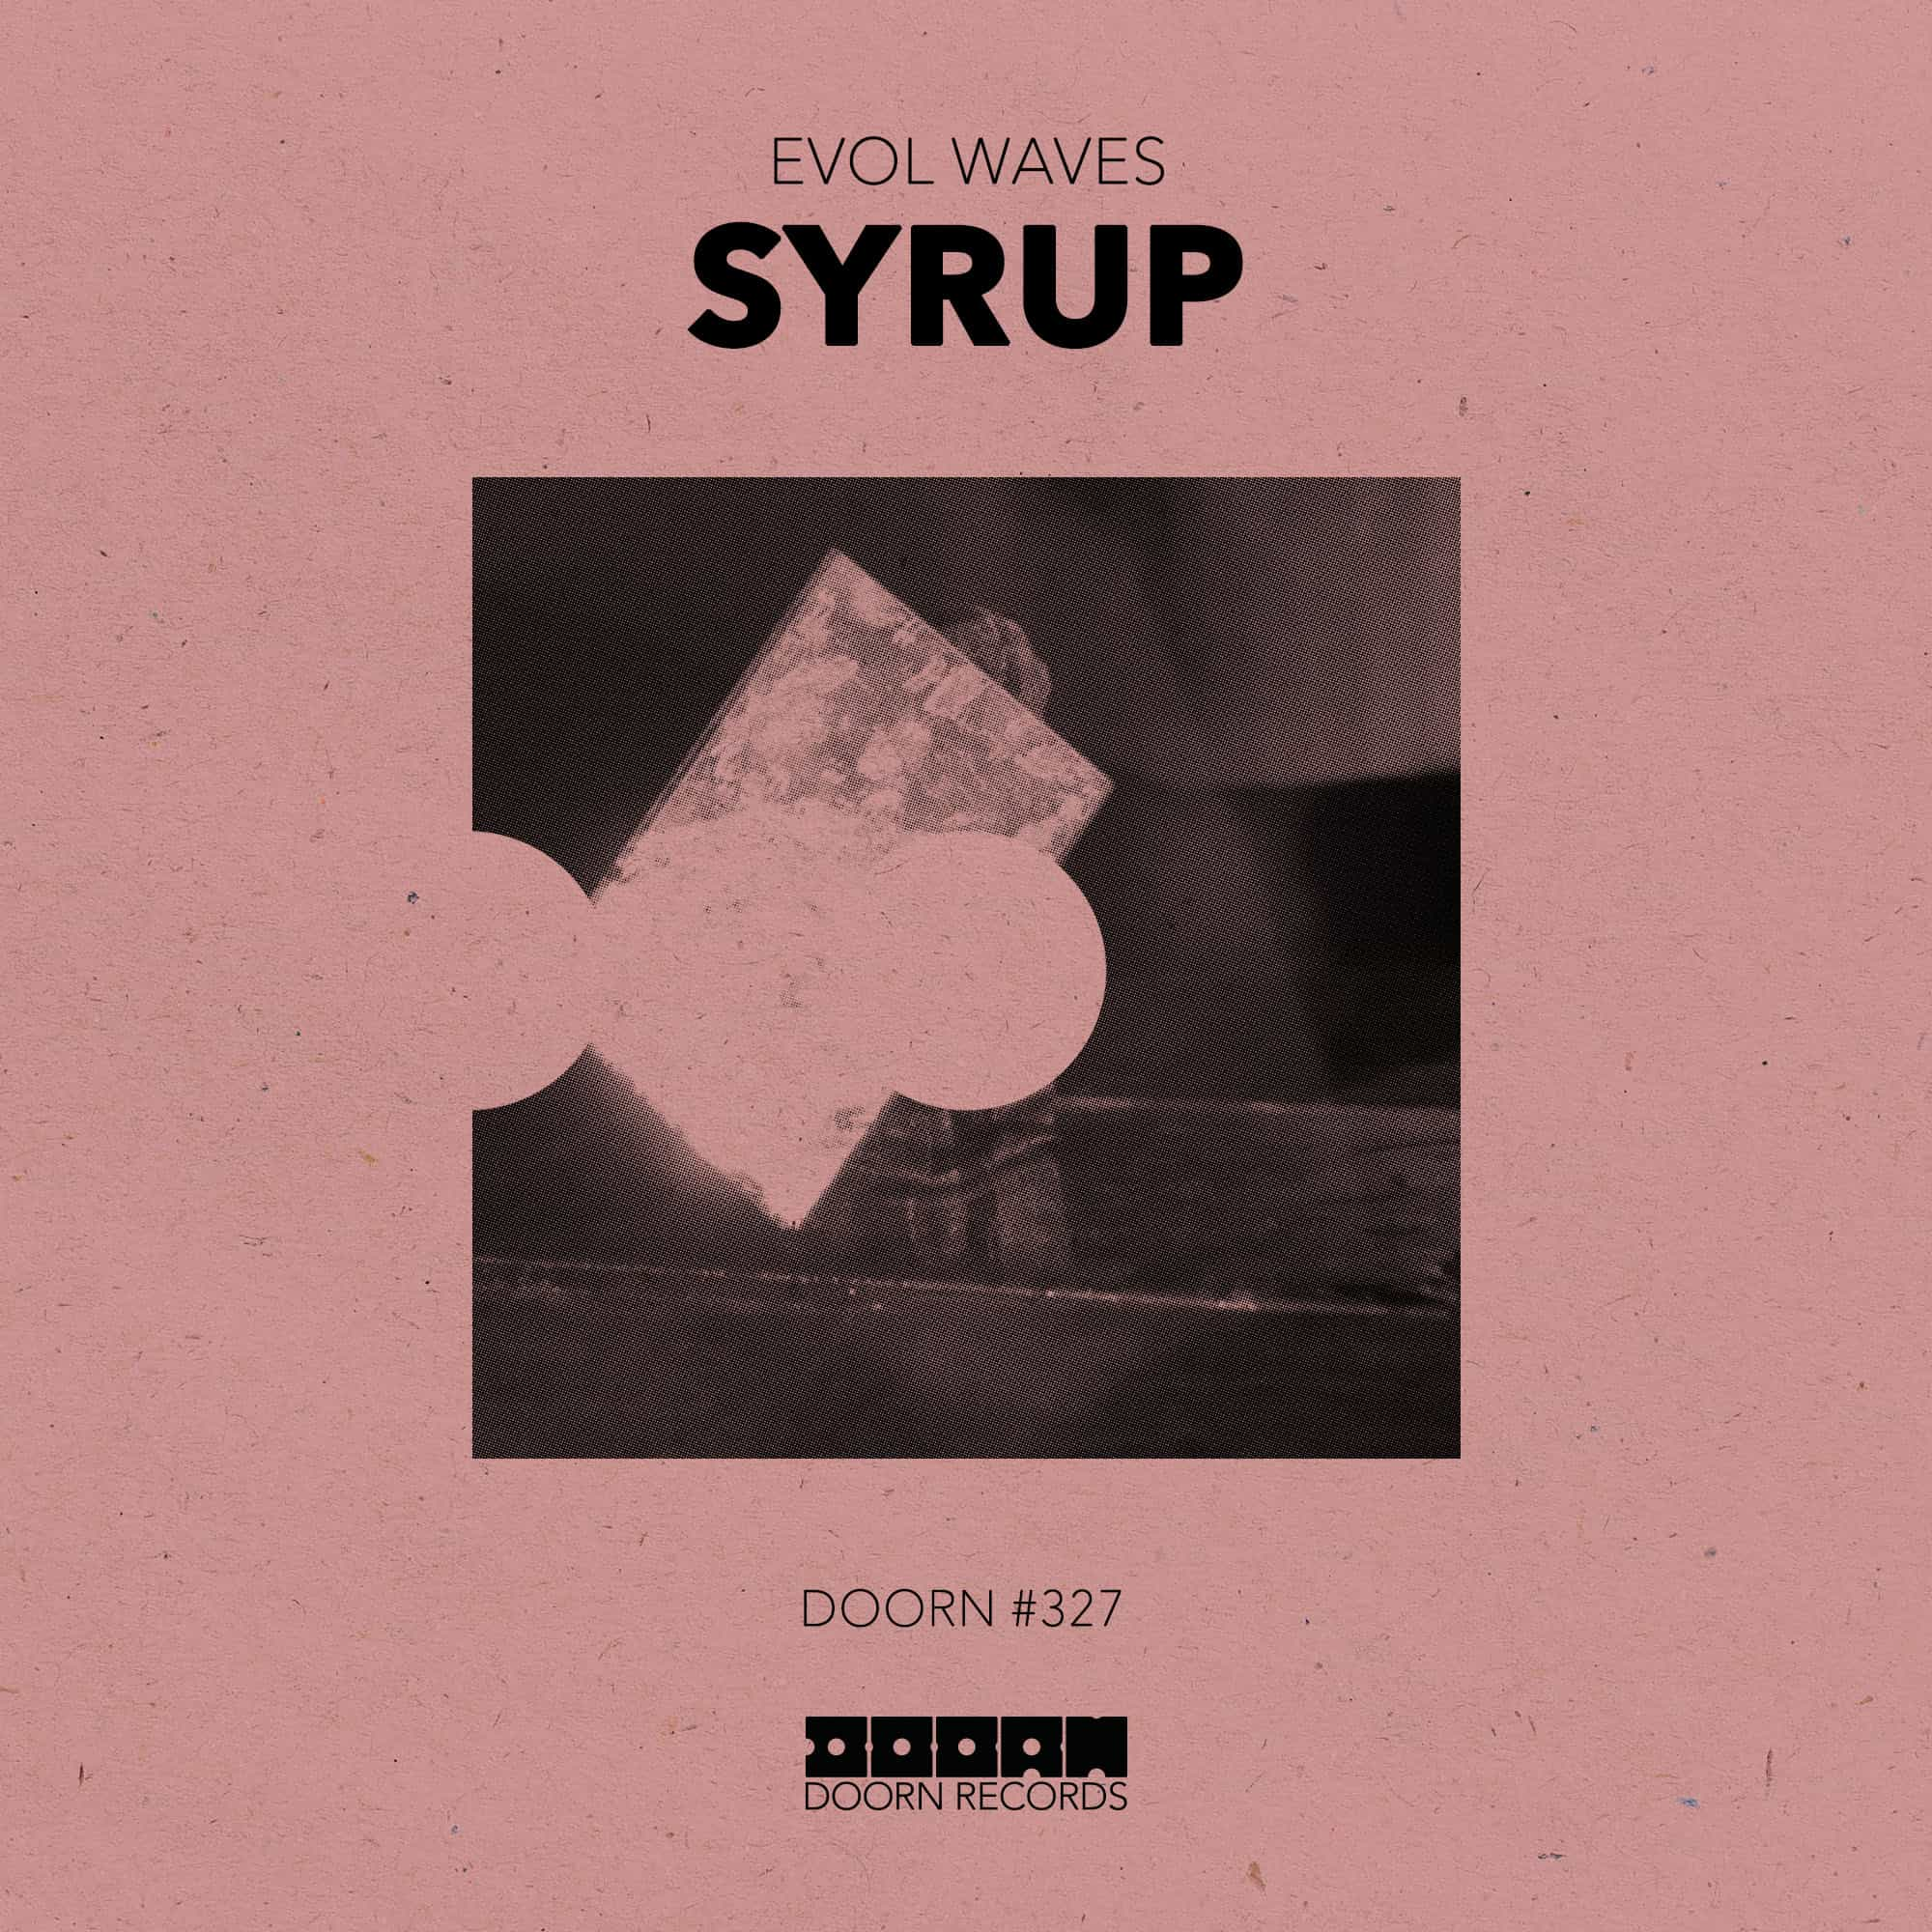 Evol Waves – Syrup lands on Doorn Records